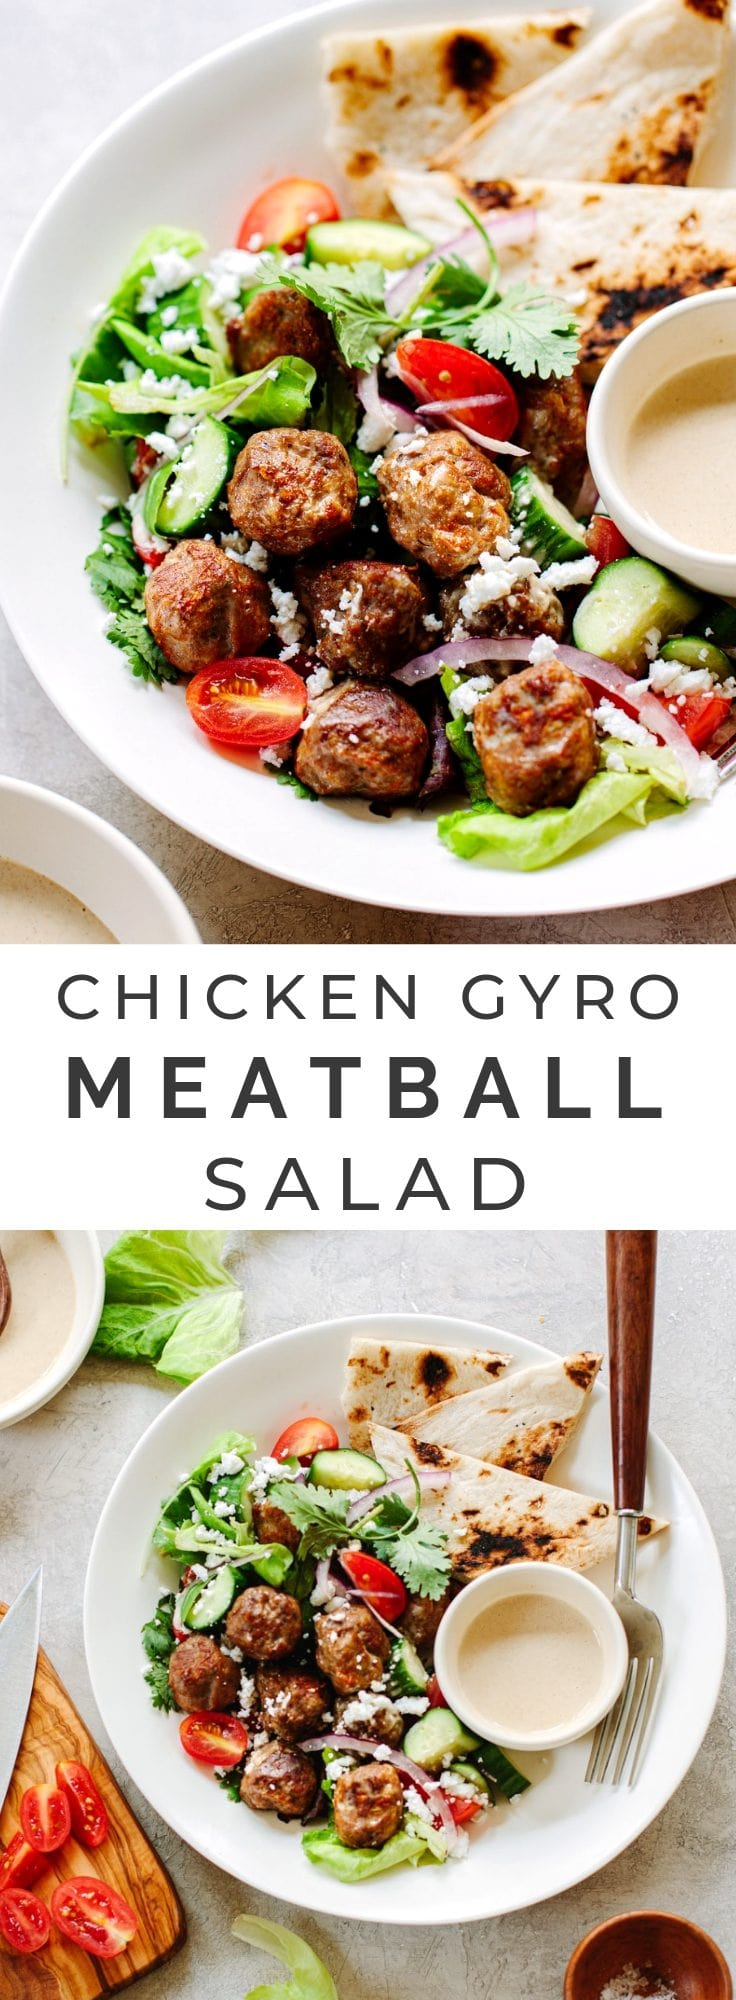 Healthy, flavorful chicken gyro salad, topped with tasty spiced meatballs, chopped veggies and a lemon tahini sauce or tzatziki. Perfect low-carb main dish. #easy #lowcarb #keto #salad #recipe